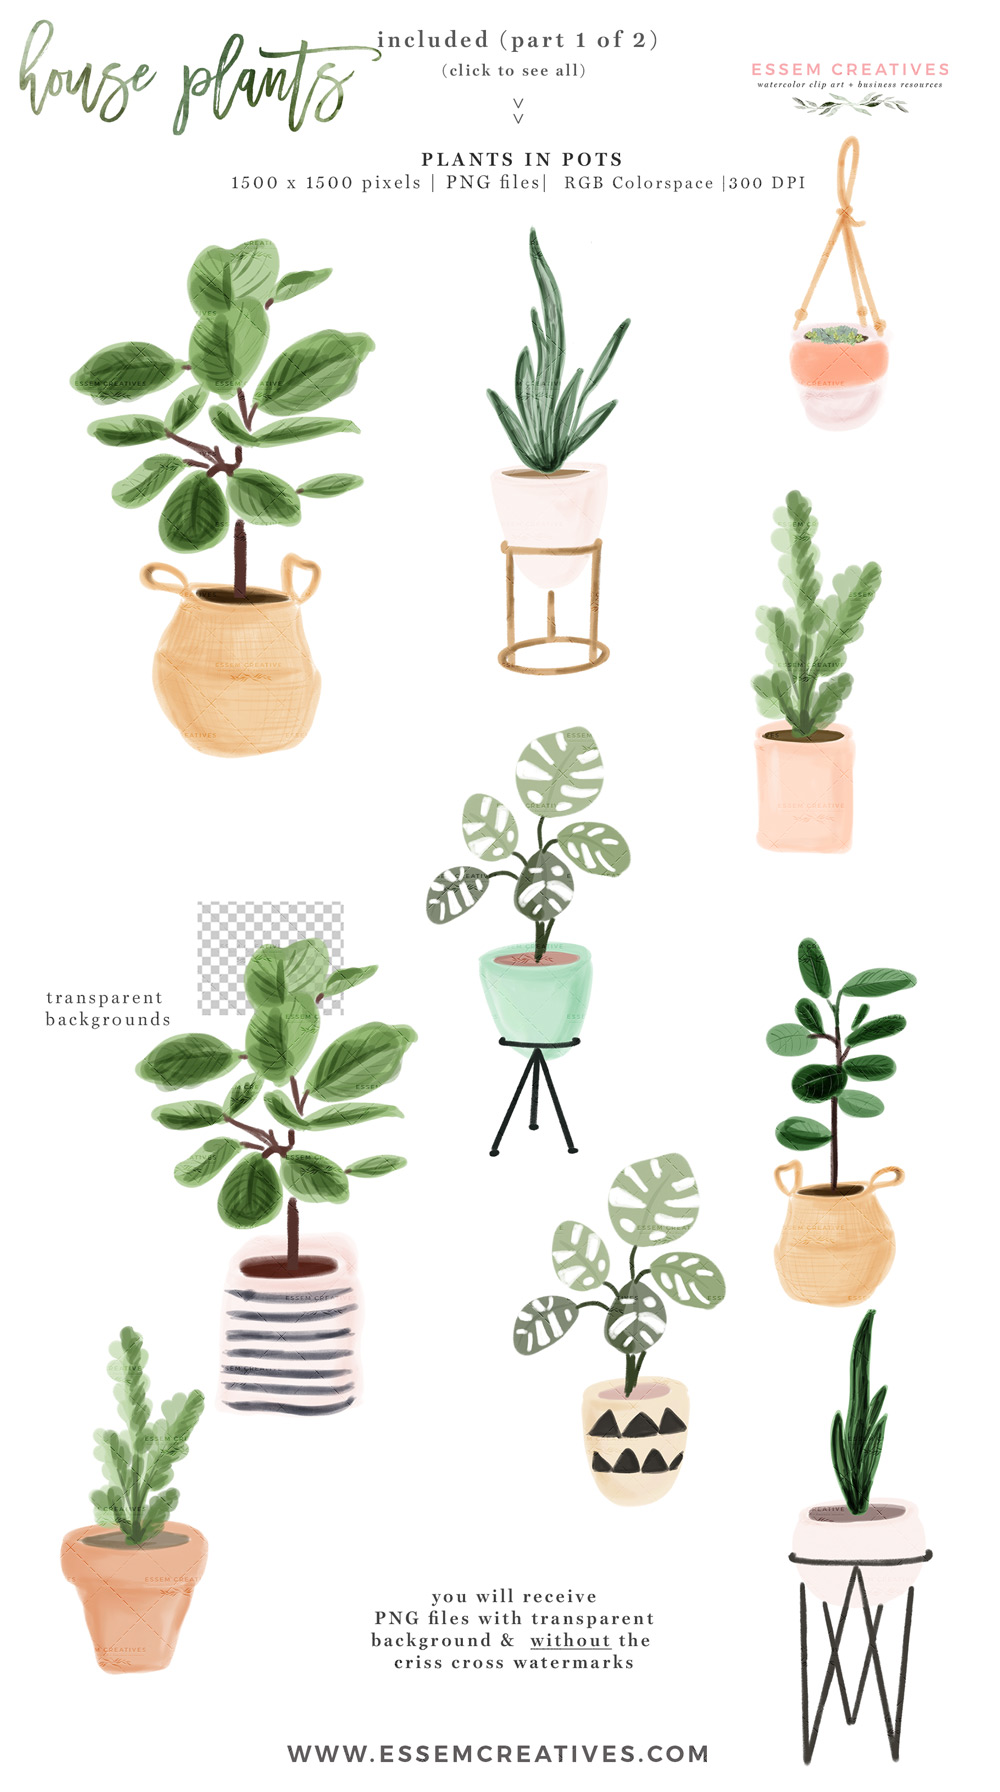 Indoor plant clipart jpg royalty free stock Watercolor House Plant Clip Art, Indoor Plants Potted Plant Graphics  Illustrations jpg royalty free stock